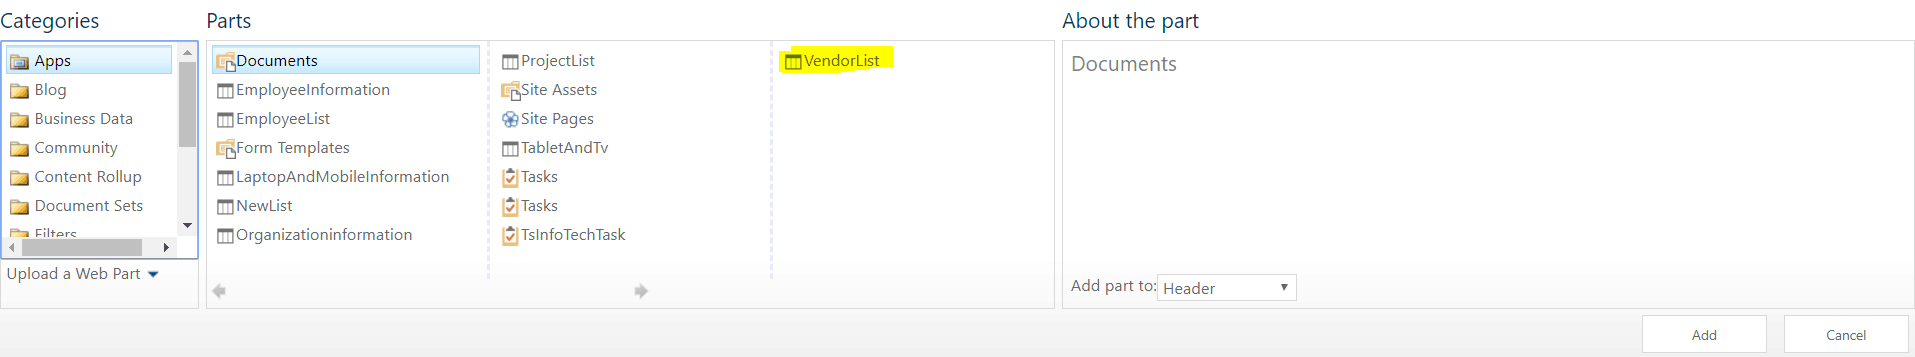 sharepoint text filter partial search